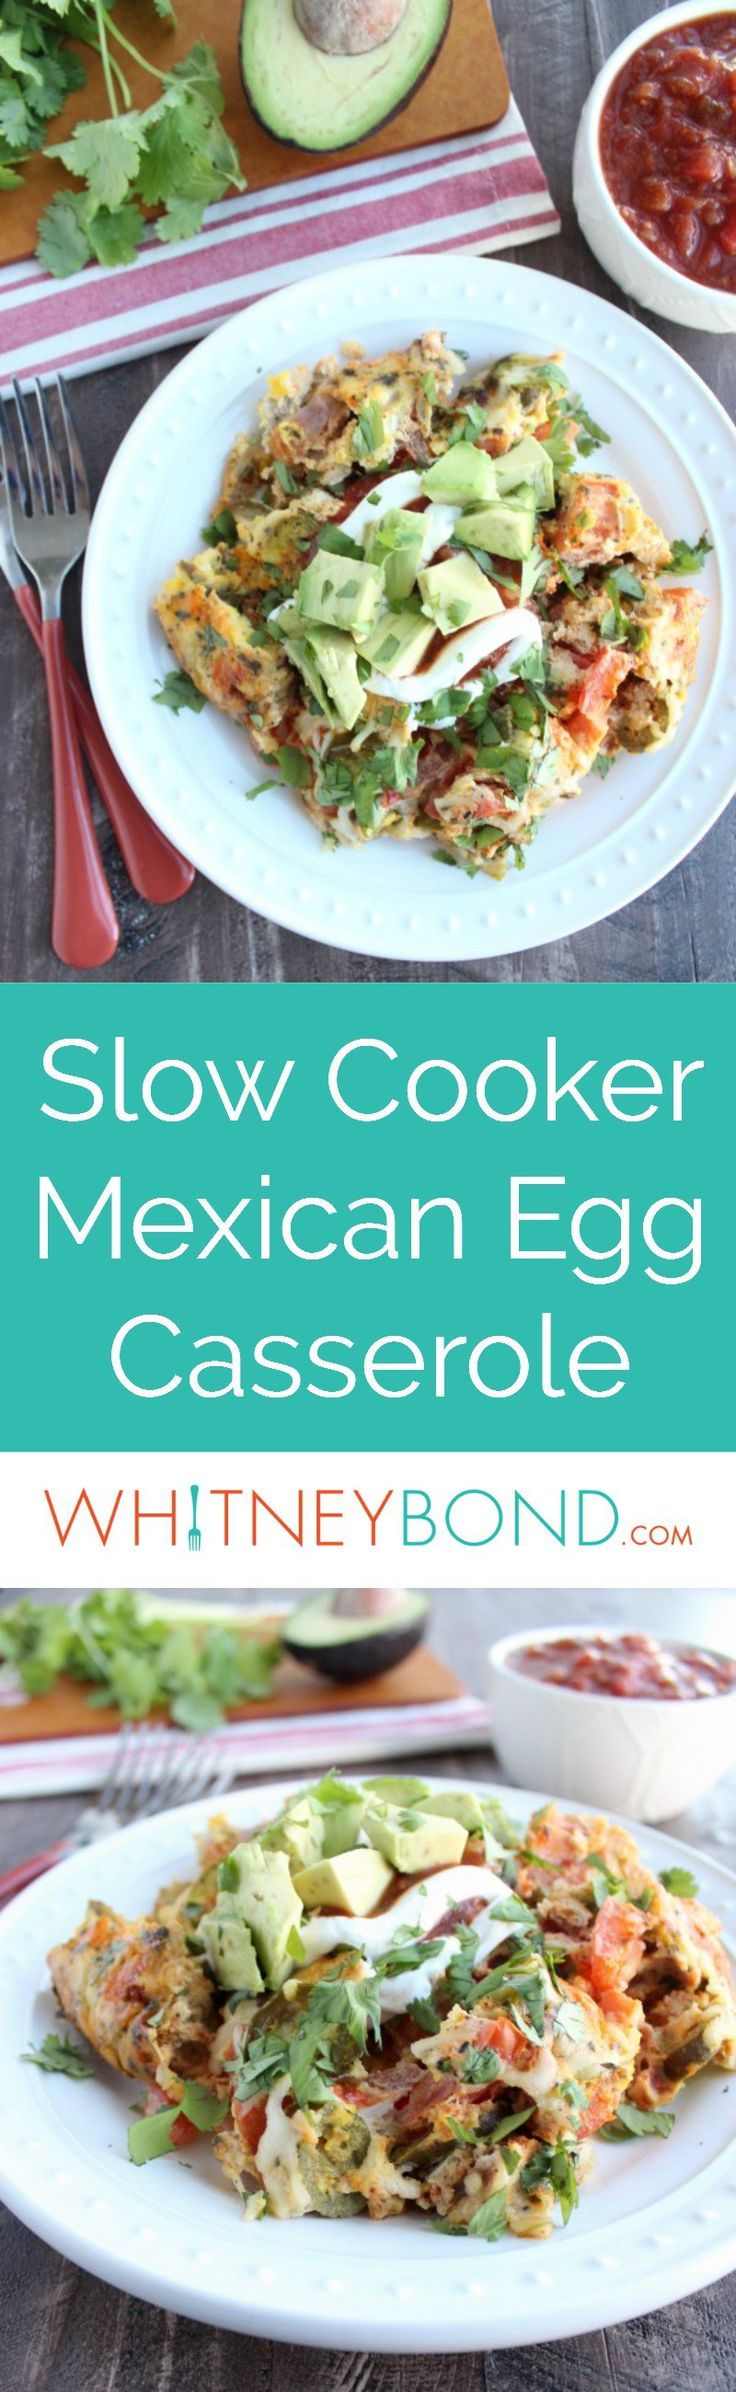 663 best Cinco de Mayo / Mexican meals images on Pinterest ...